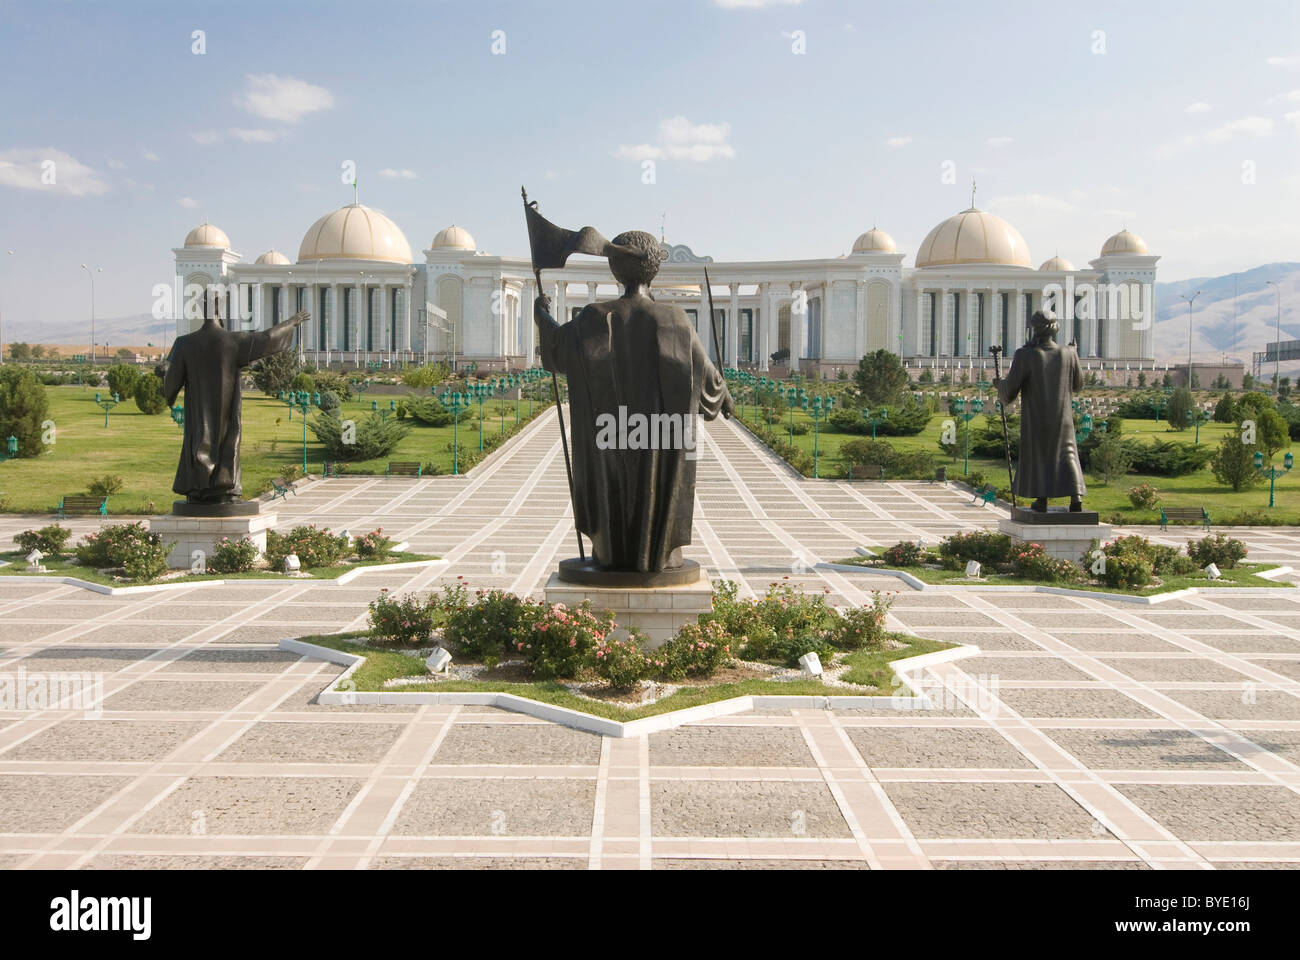 Monument to the Independence of Turkmenistan, Ashgabat, Turkmenistan, Central Asia - Stock Image